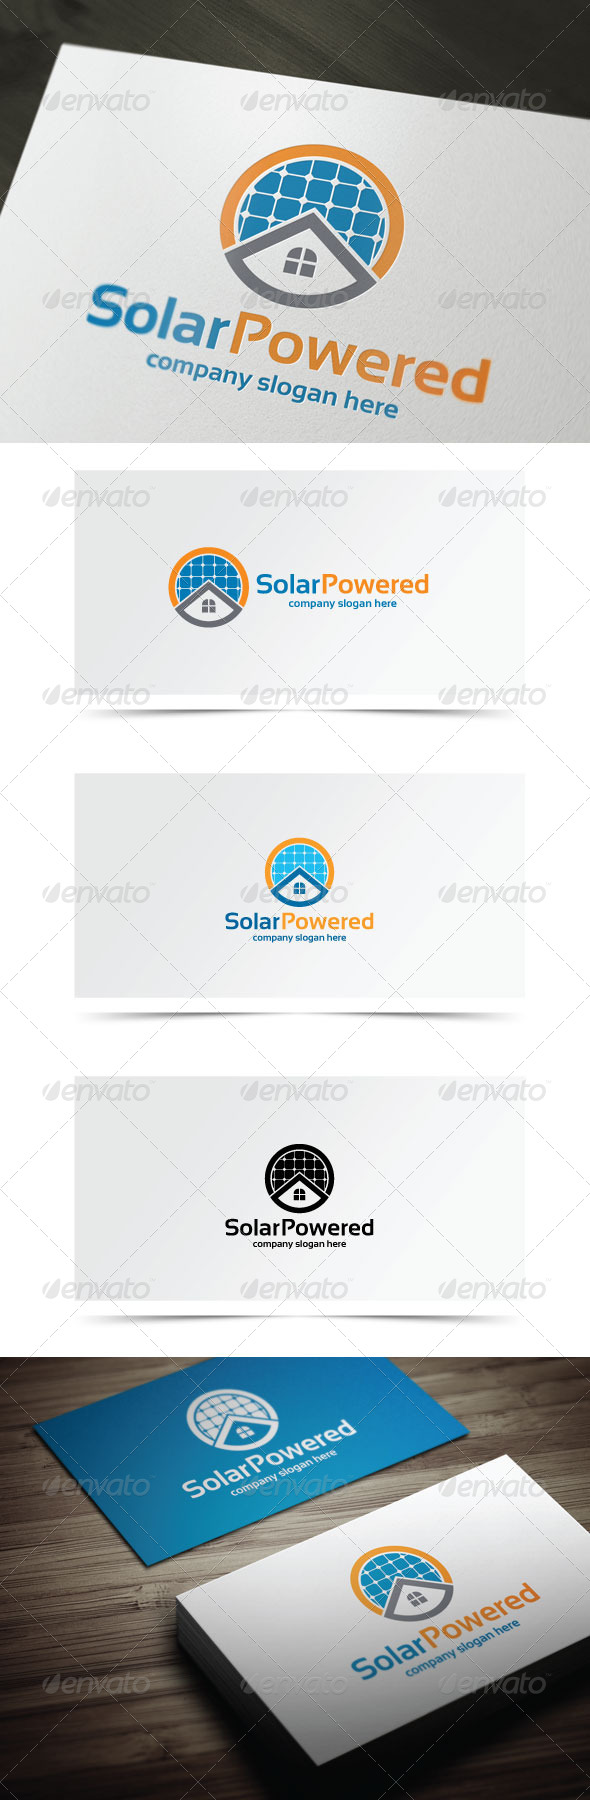 GraphicRiver Solar Powered 7516624